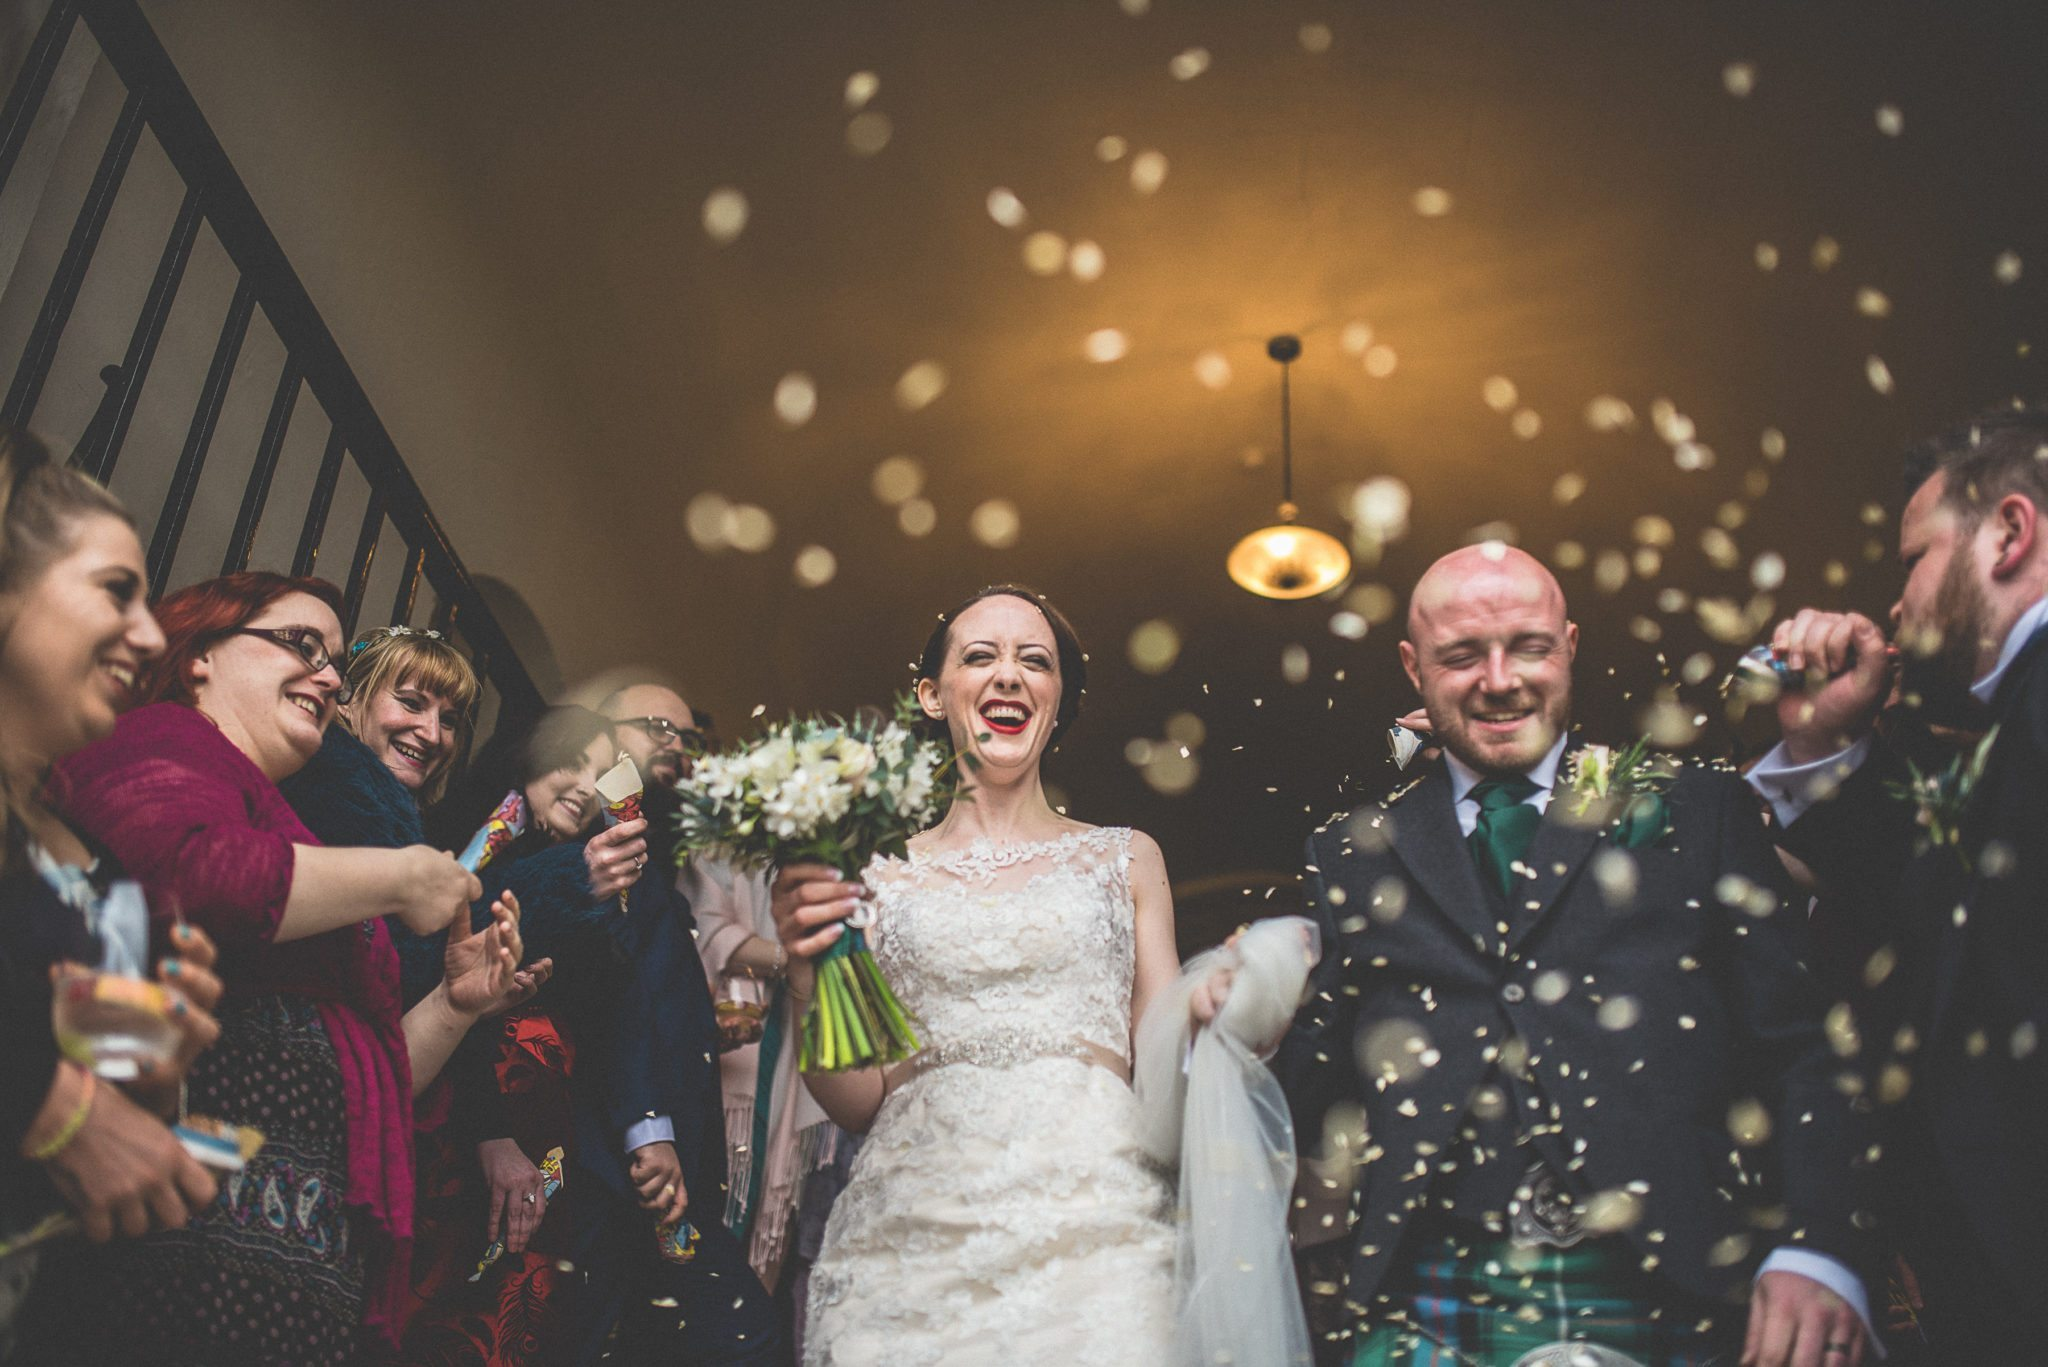 The bride and groom descend the staircase in a shower of confetti